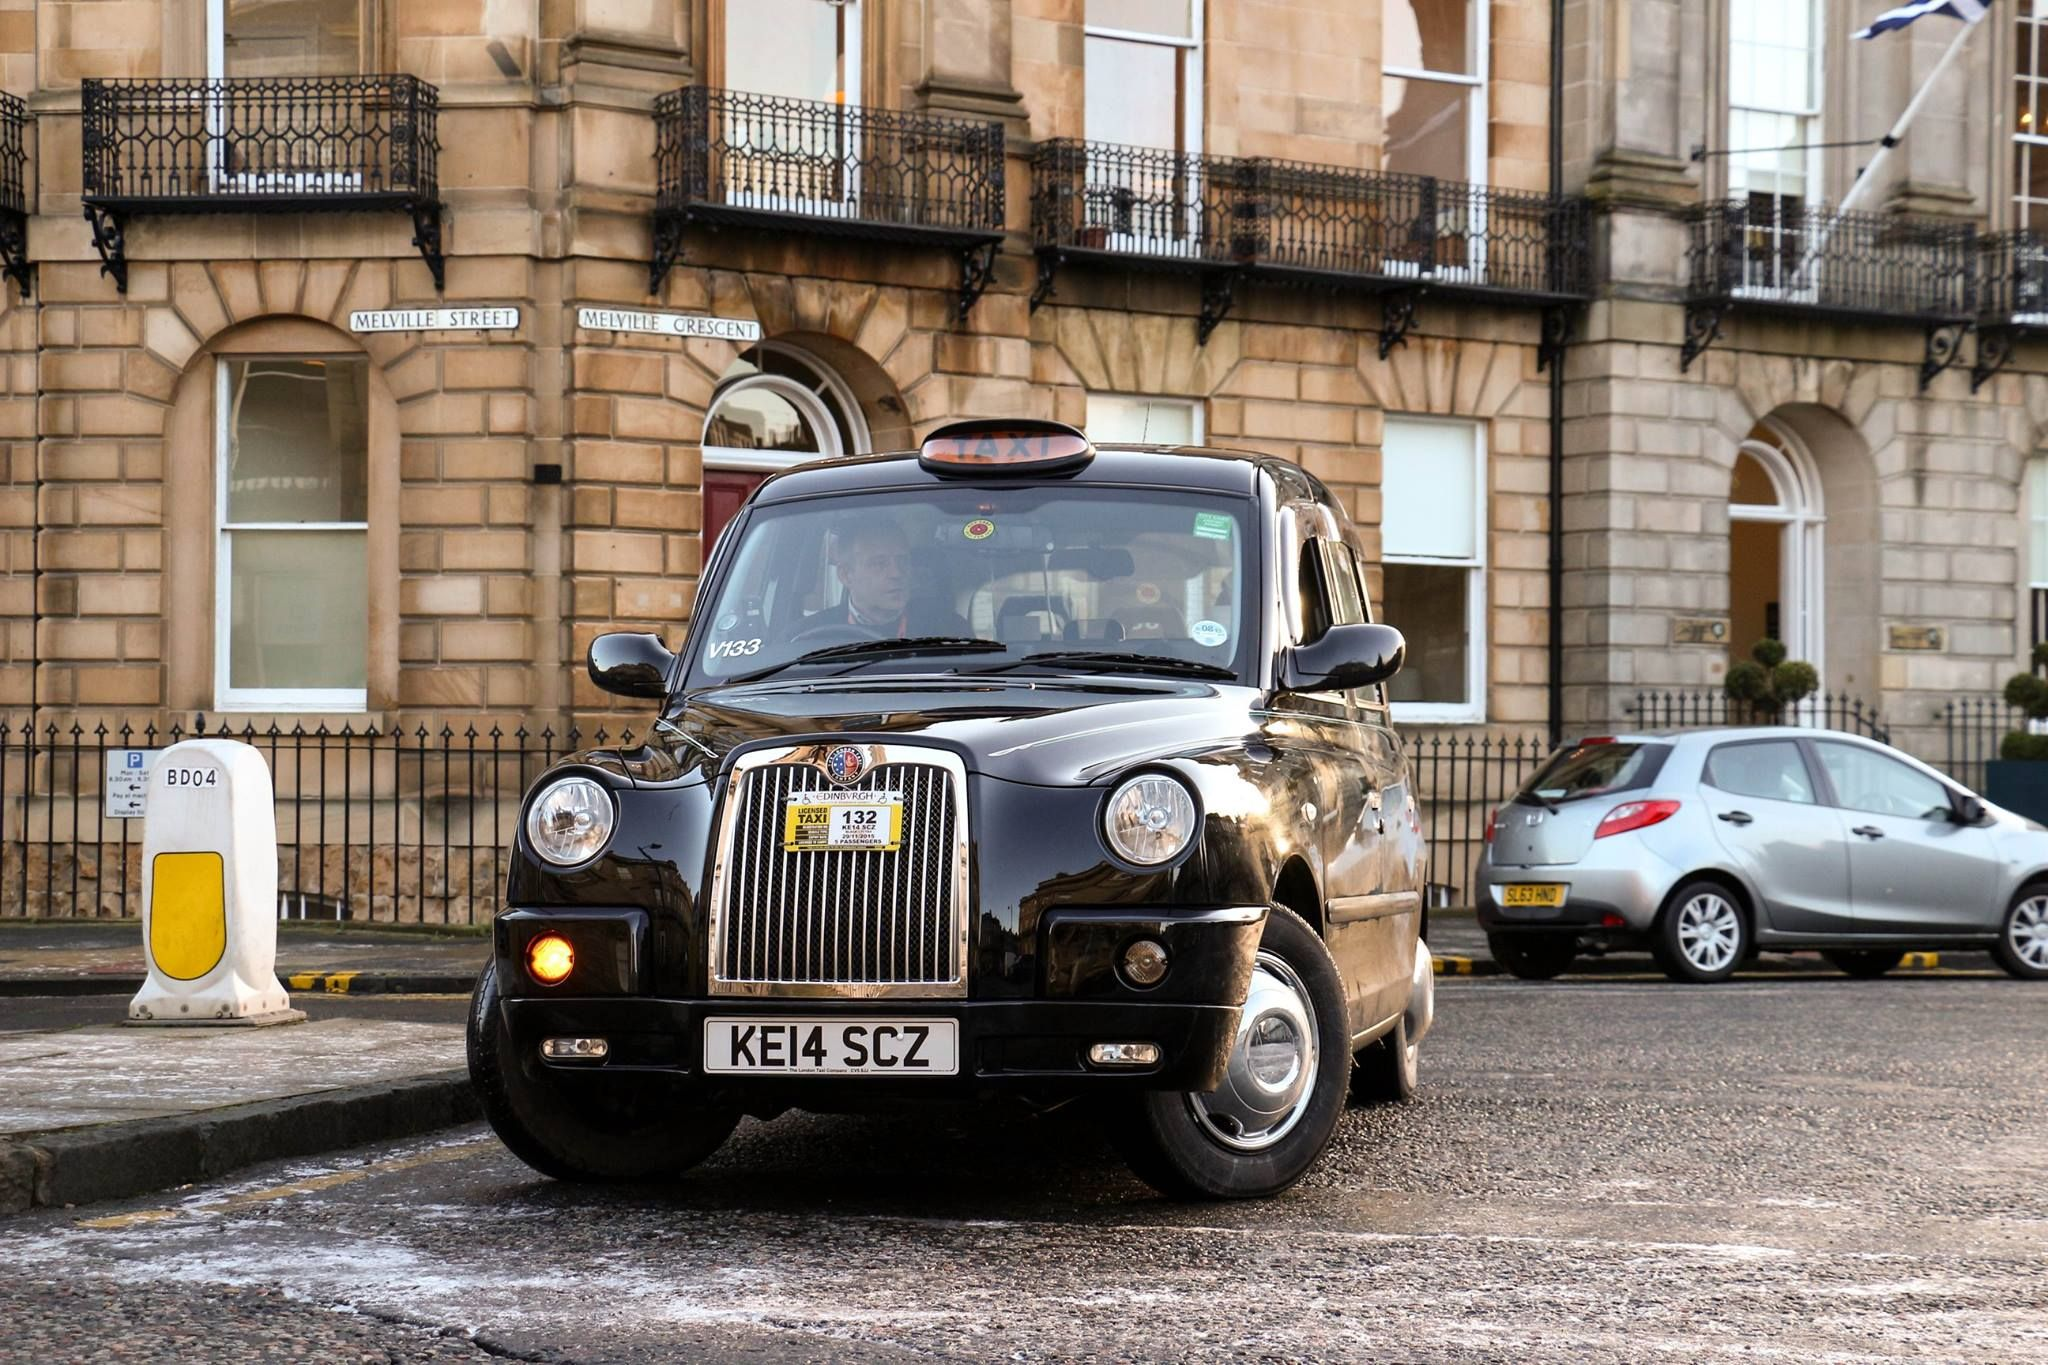 Our Taxi Looking Amazing On The Streets Of Edinburgh Taxi Suv Cab